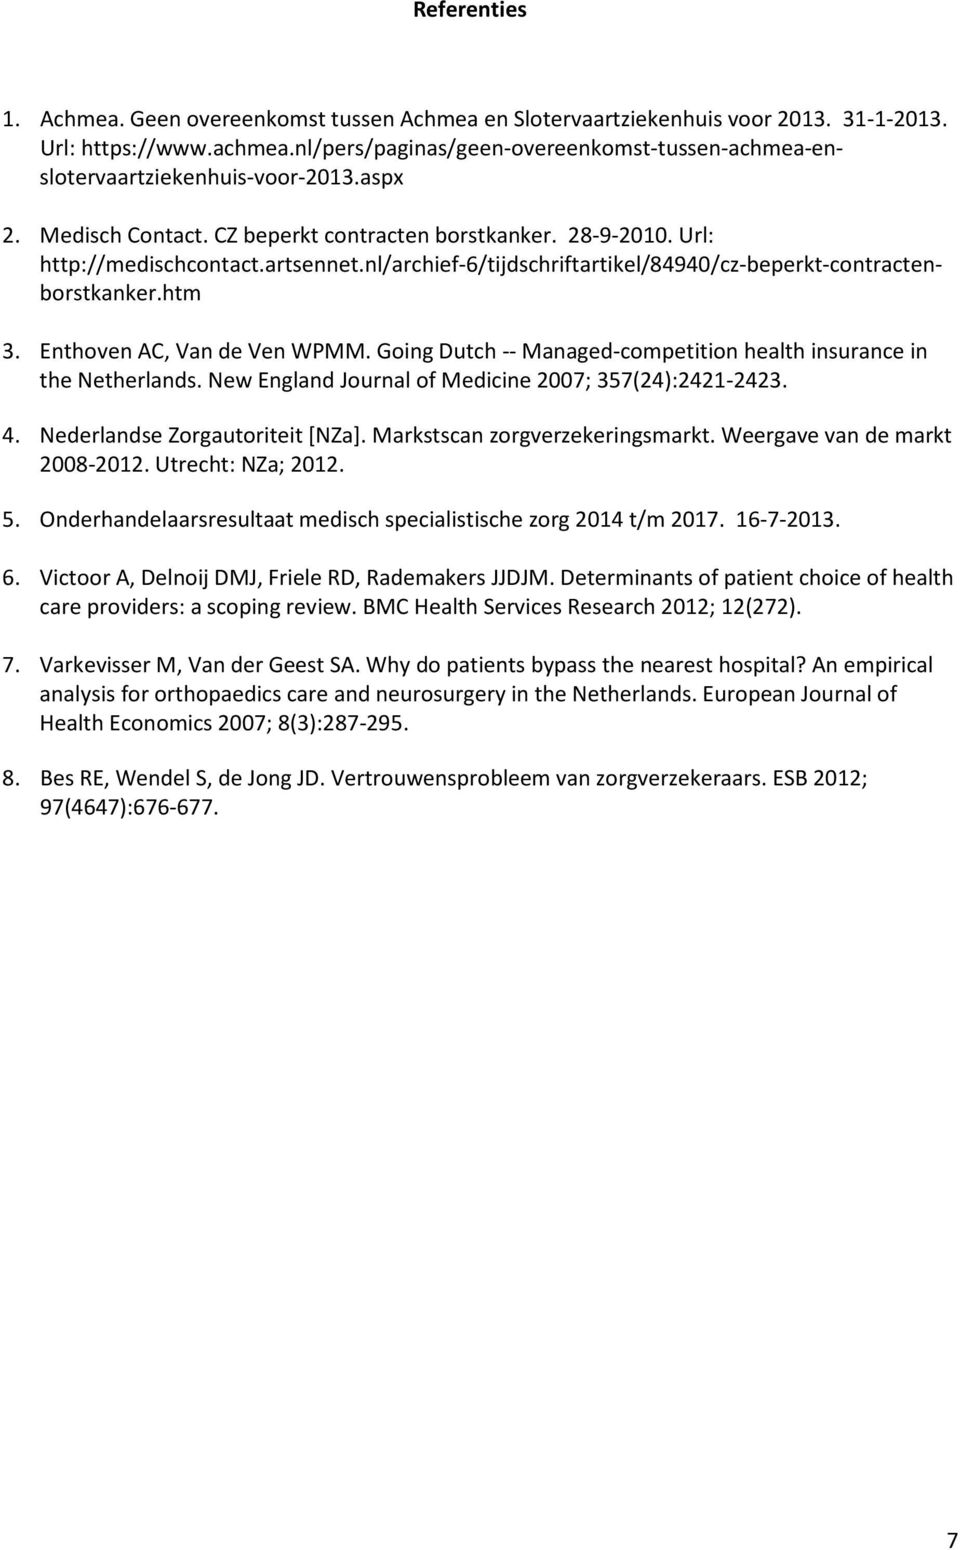 nl/archief-6/tijdschriftartikel/84940/cz-beperkt-contractenborstkanker.htm 3. Enthoven AC, Van de Ven WPMM. Going Dutch -- Managed-competition health insurance in the Netherlands.